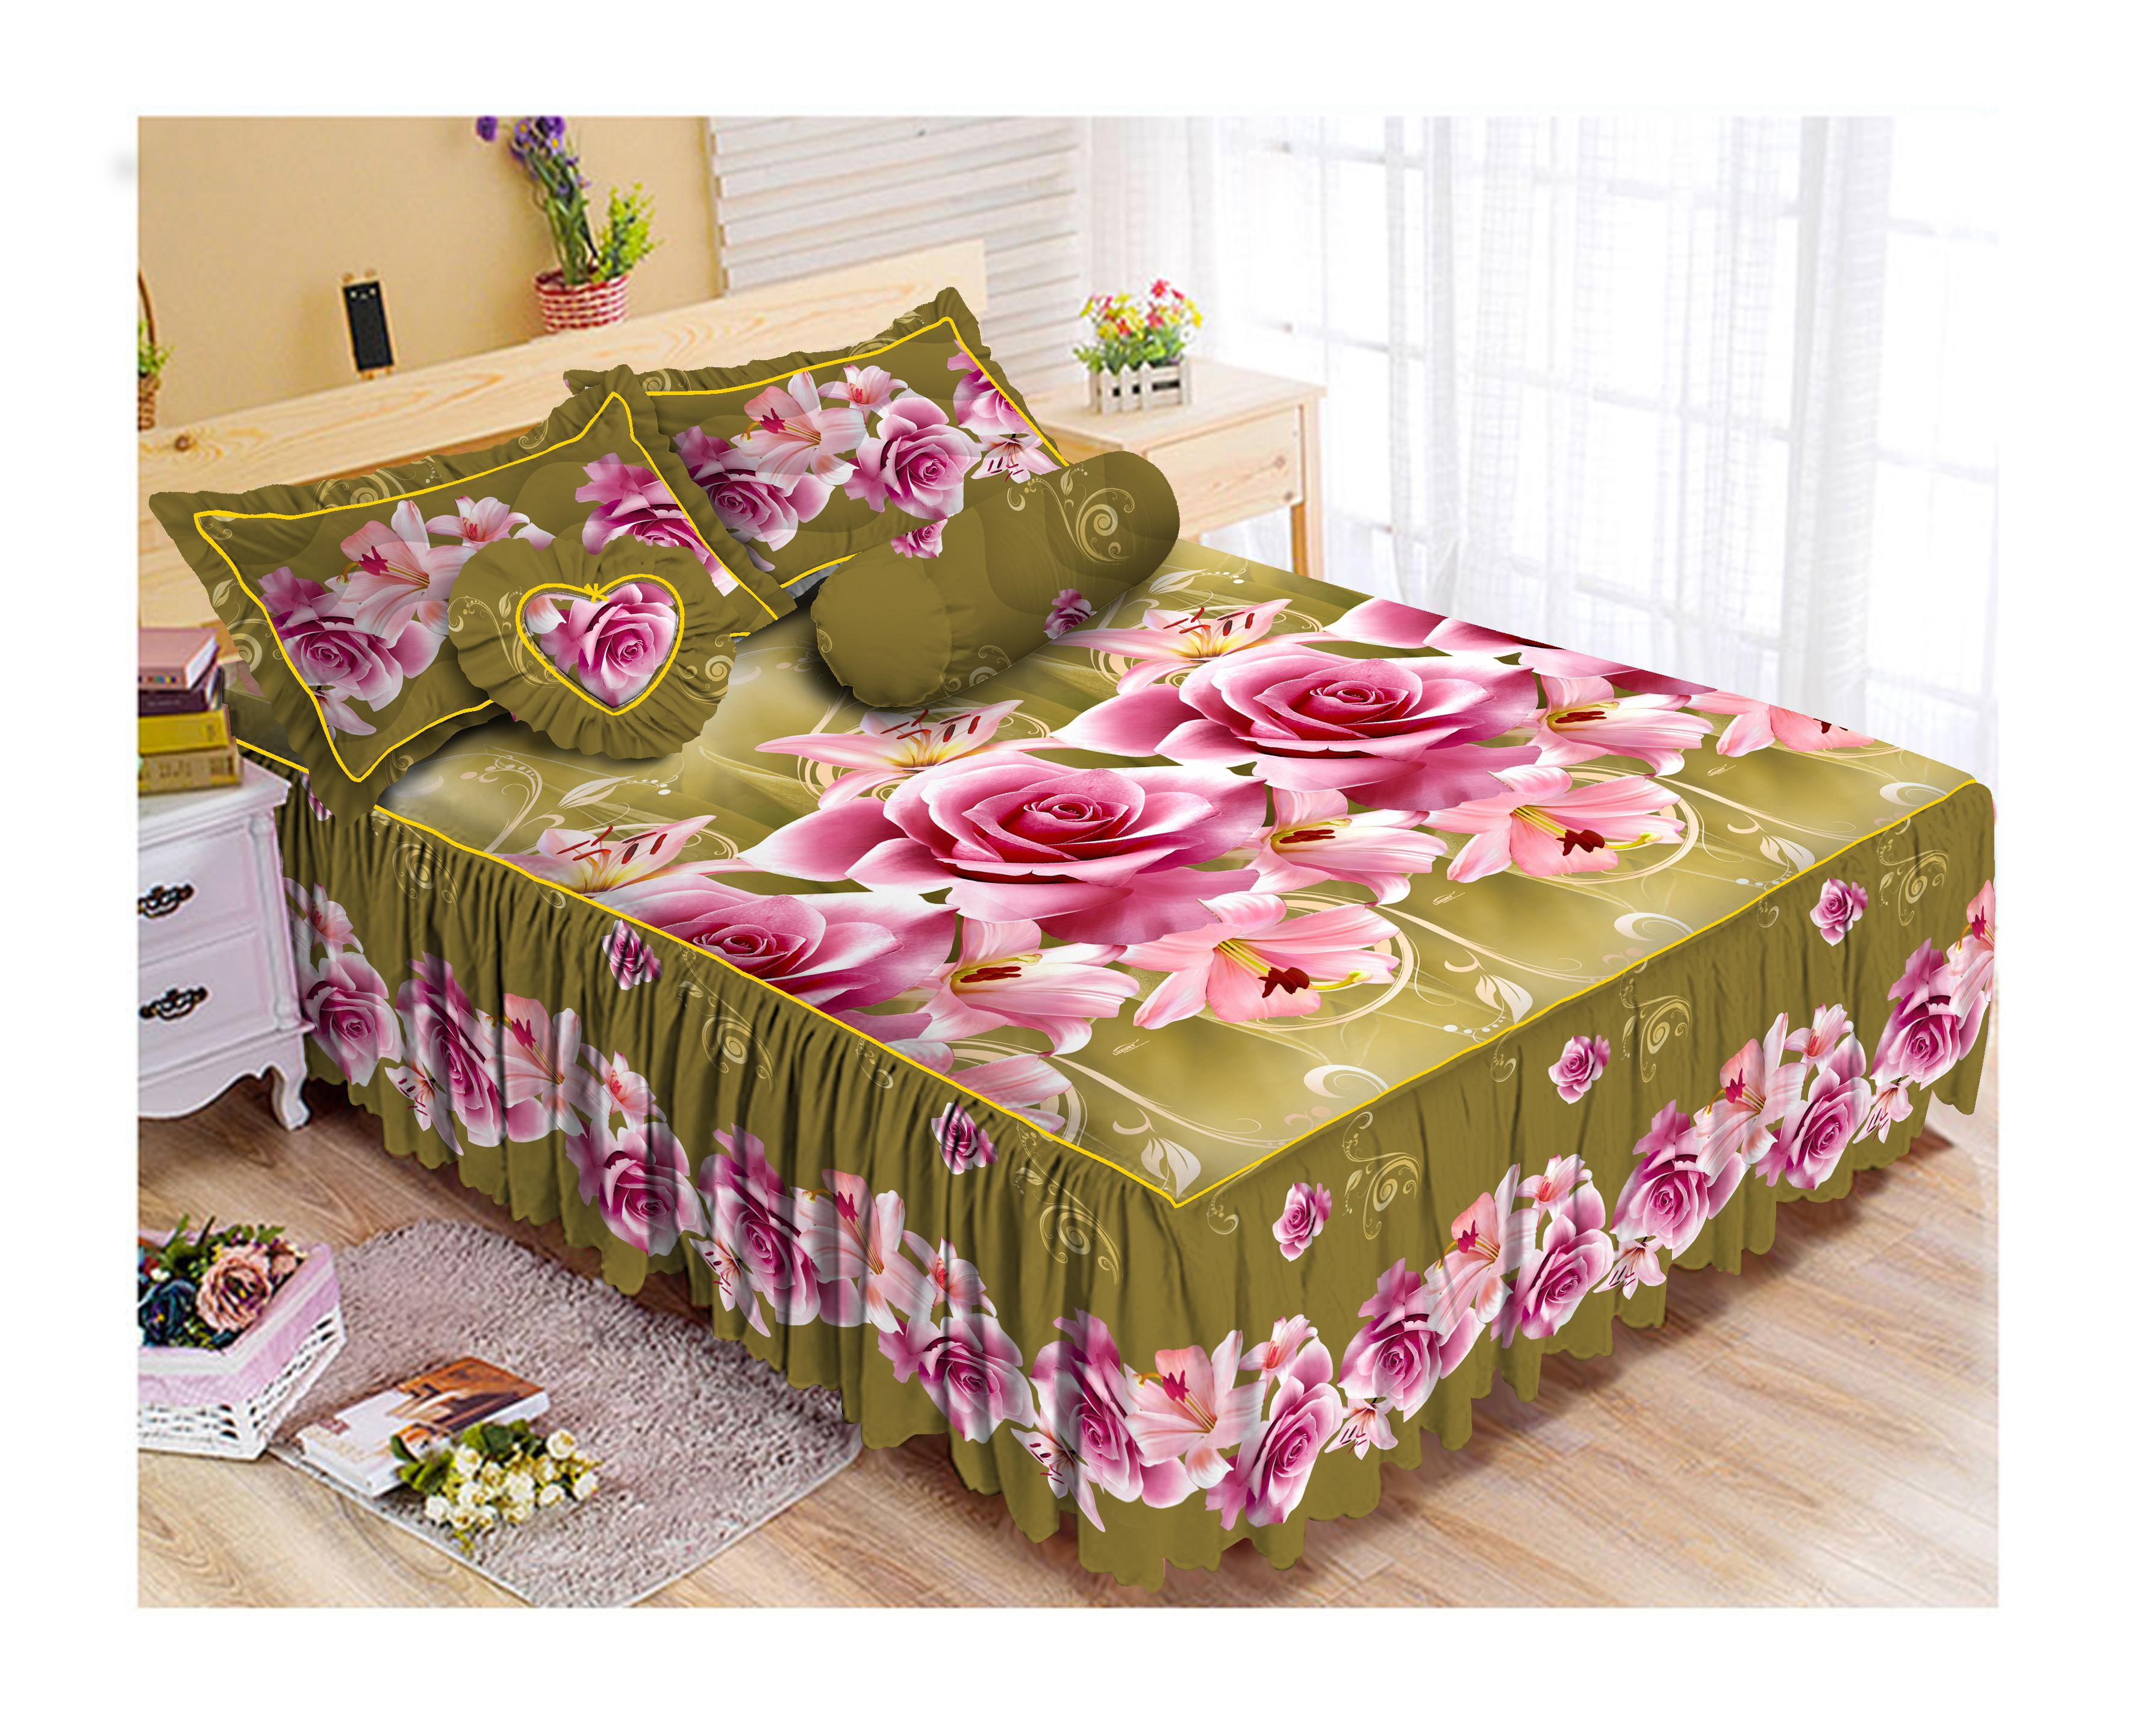 Kintakun Luxury Sprei Rumbai - 180 x 200 B2 (King) - Calista